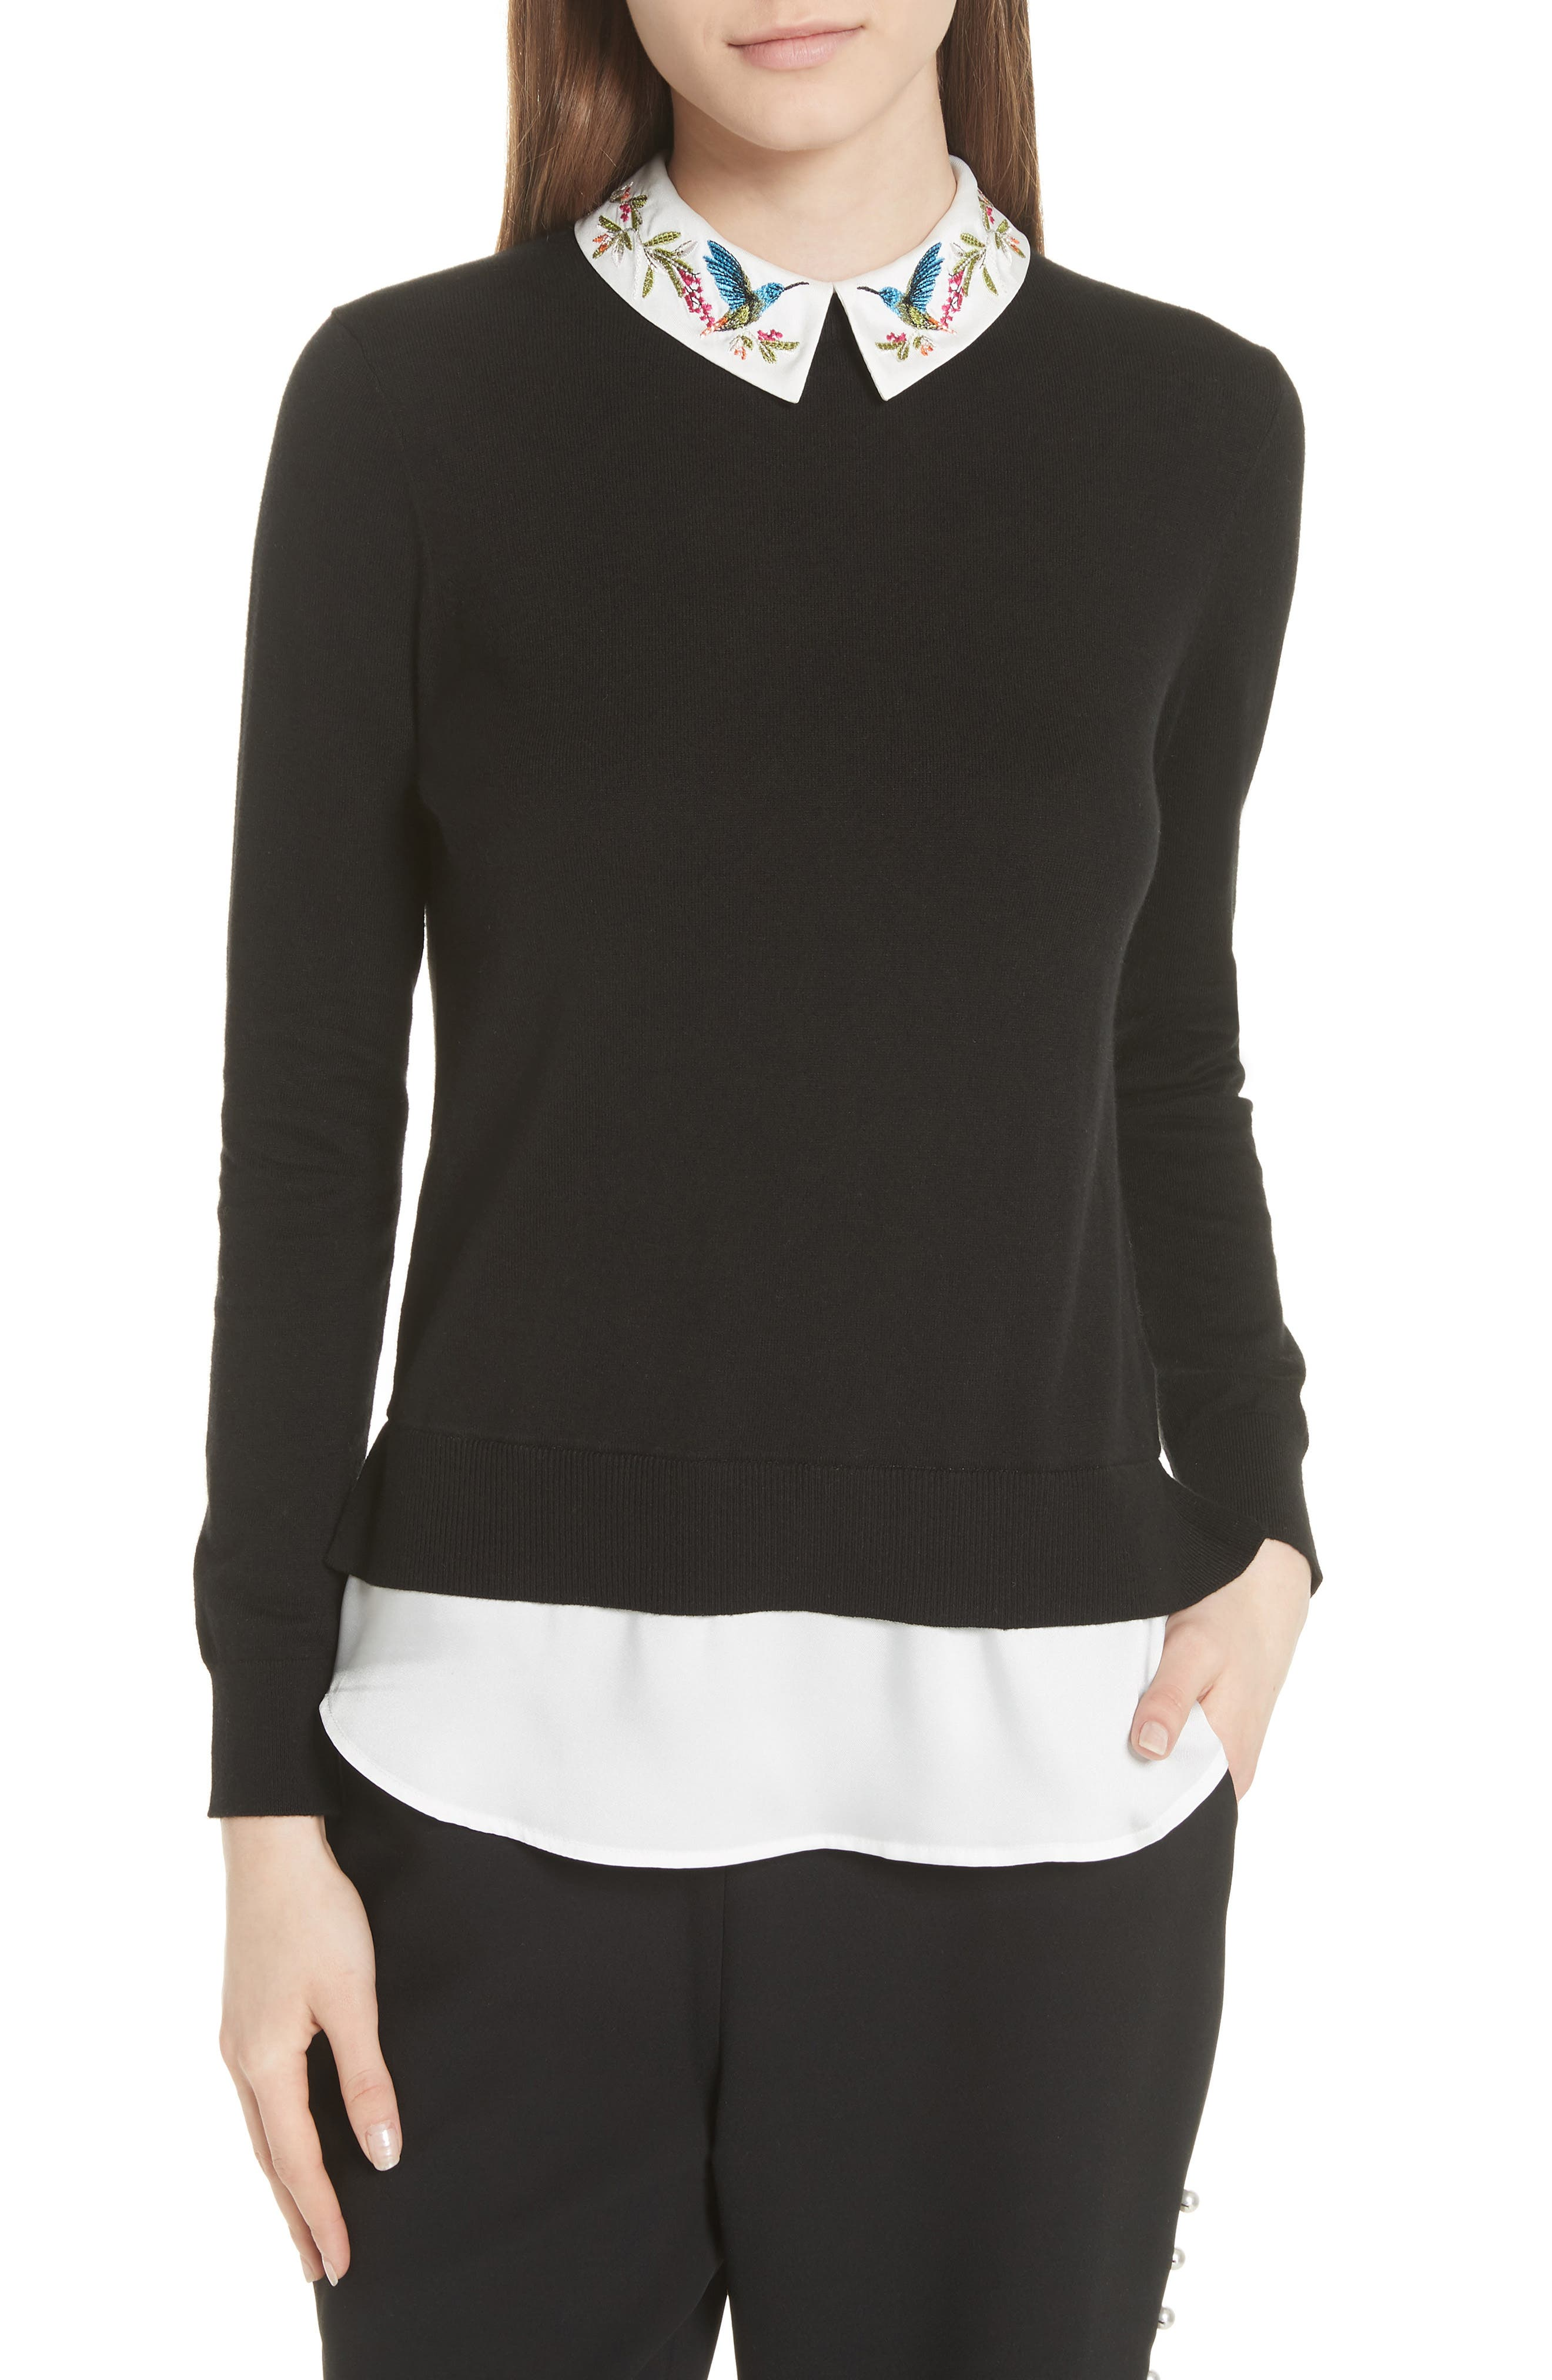 Highgrove Layered Look Sweater,                             Main thumbnail 1, color,                             Black